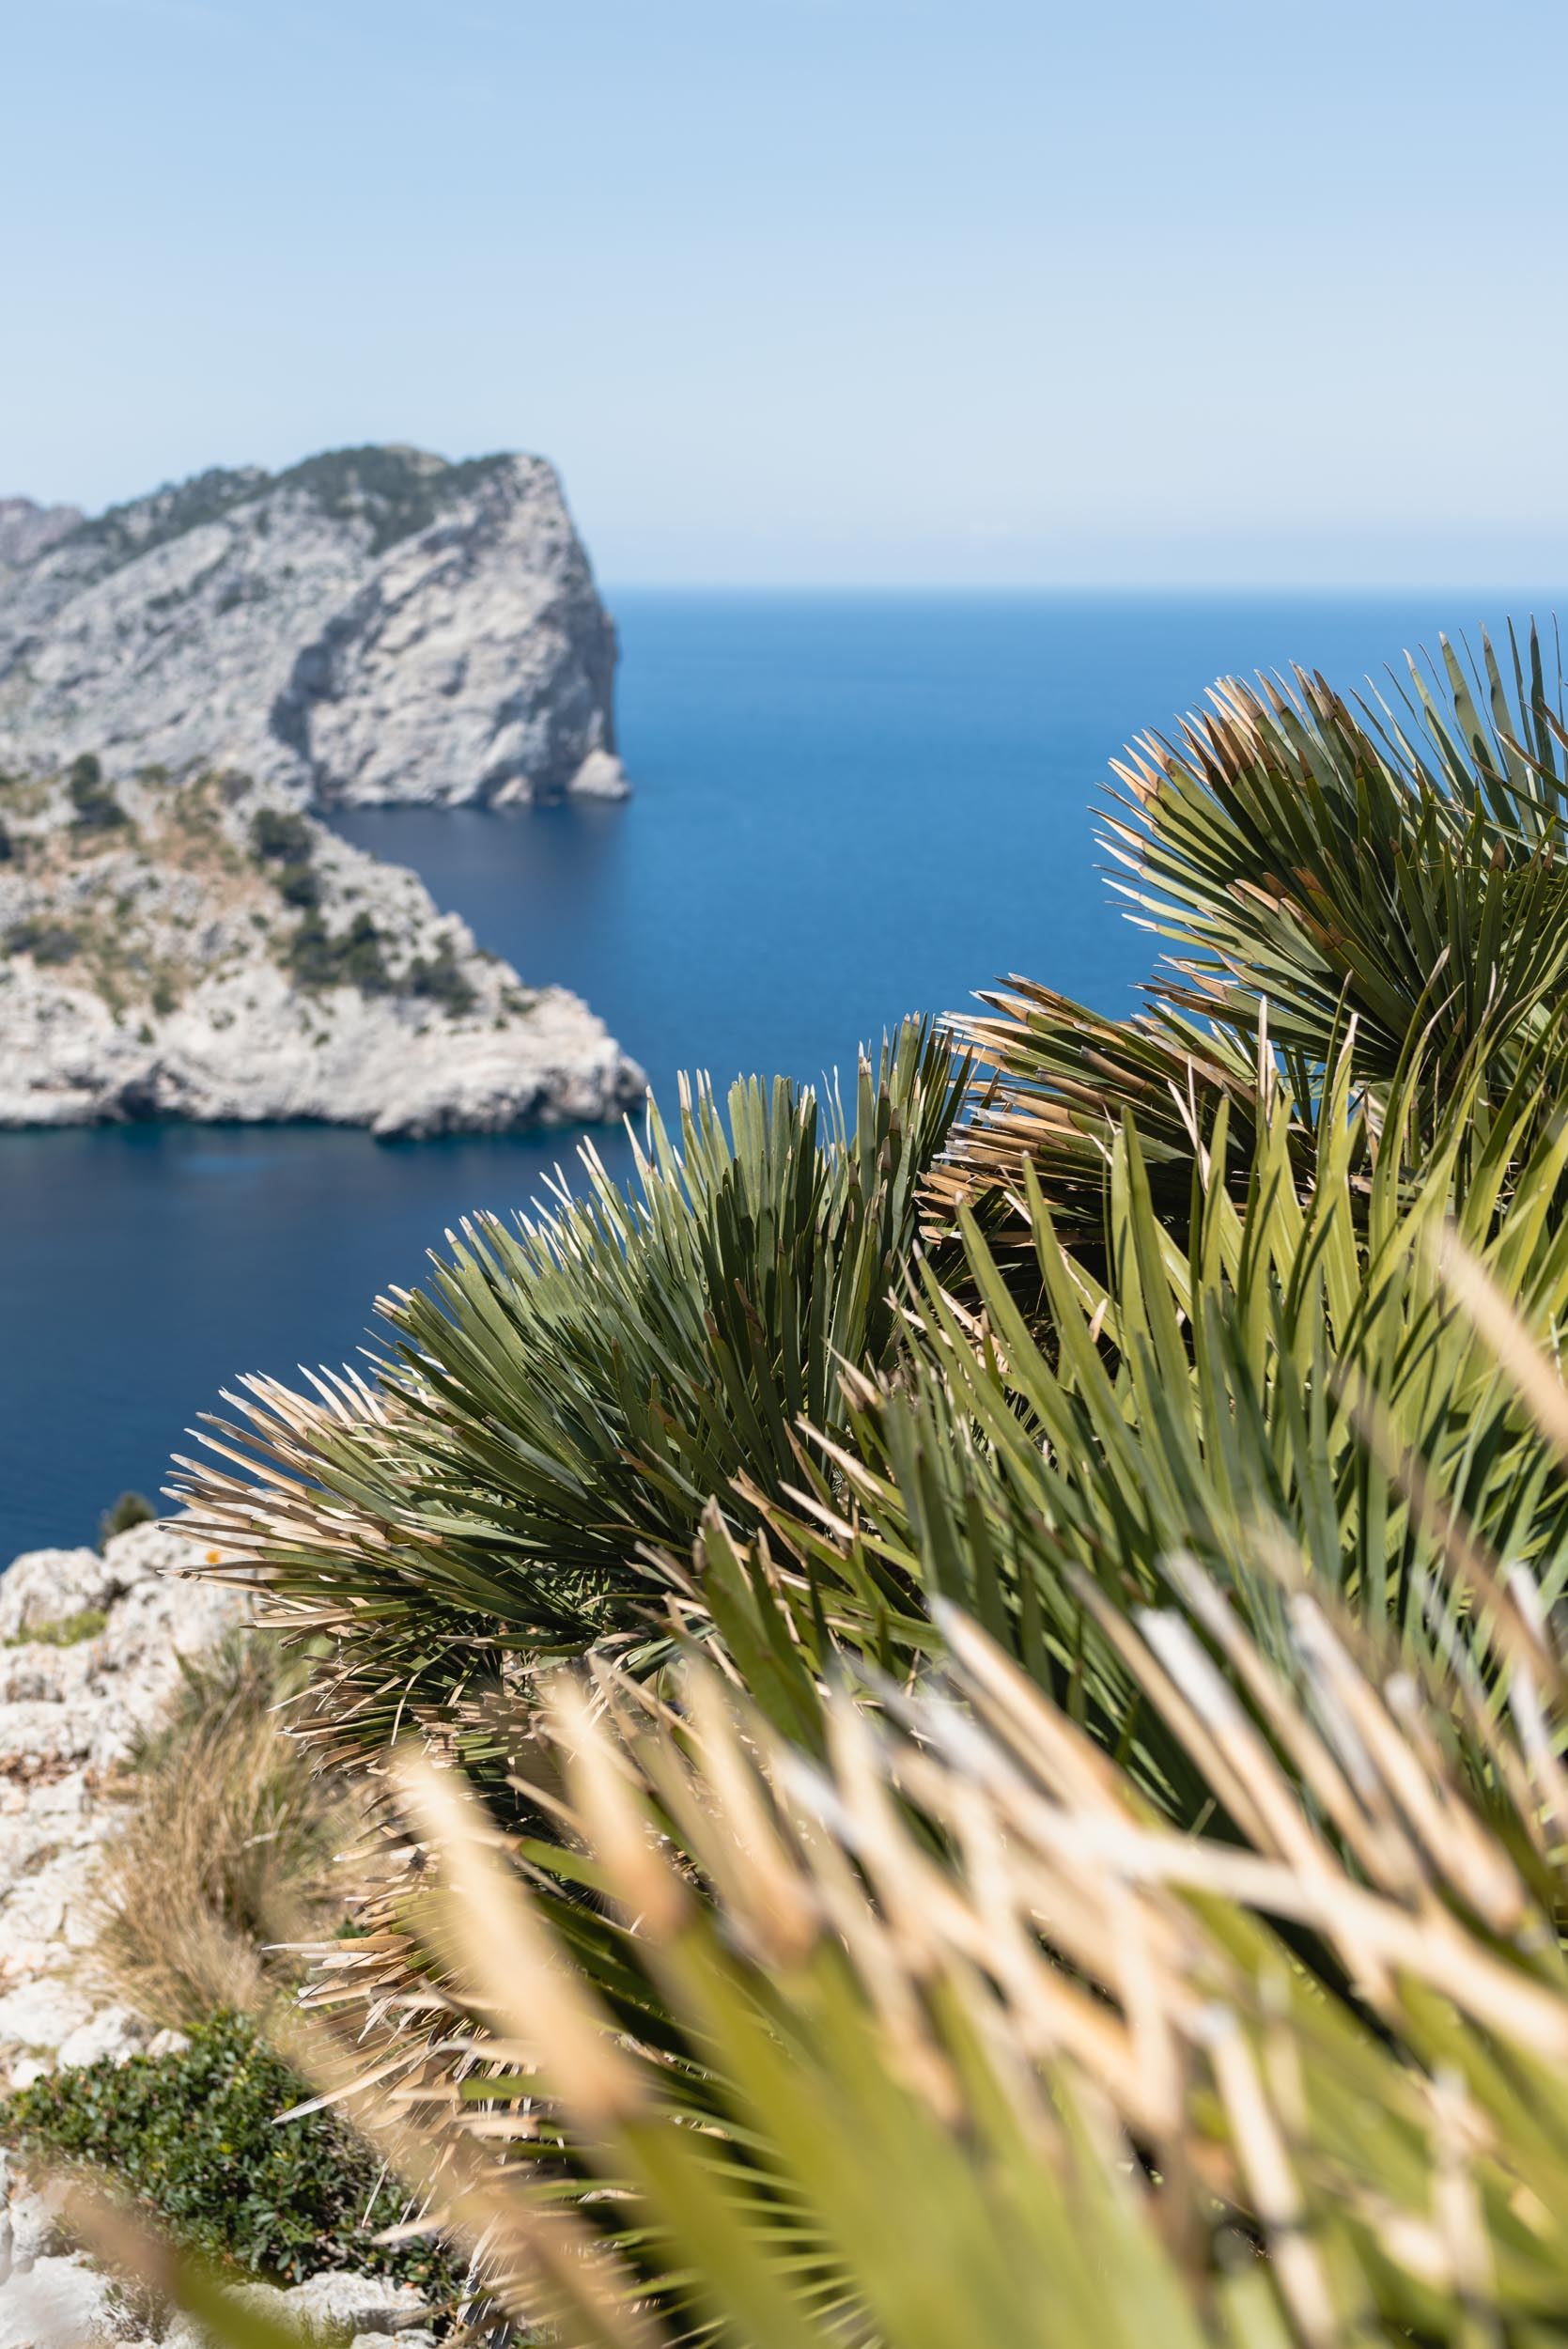 Mirador lookout Mallorca with palm grass